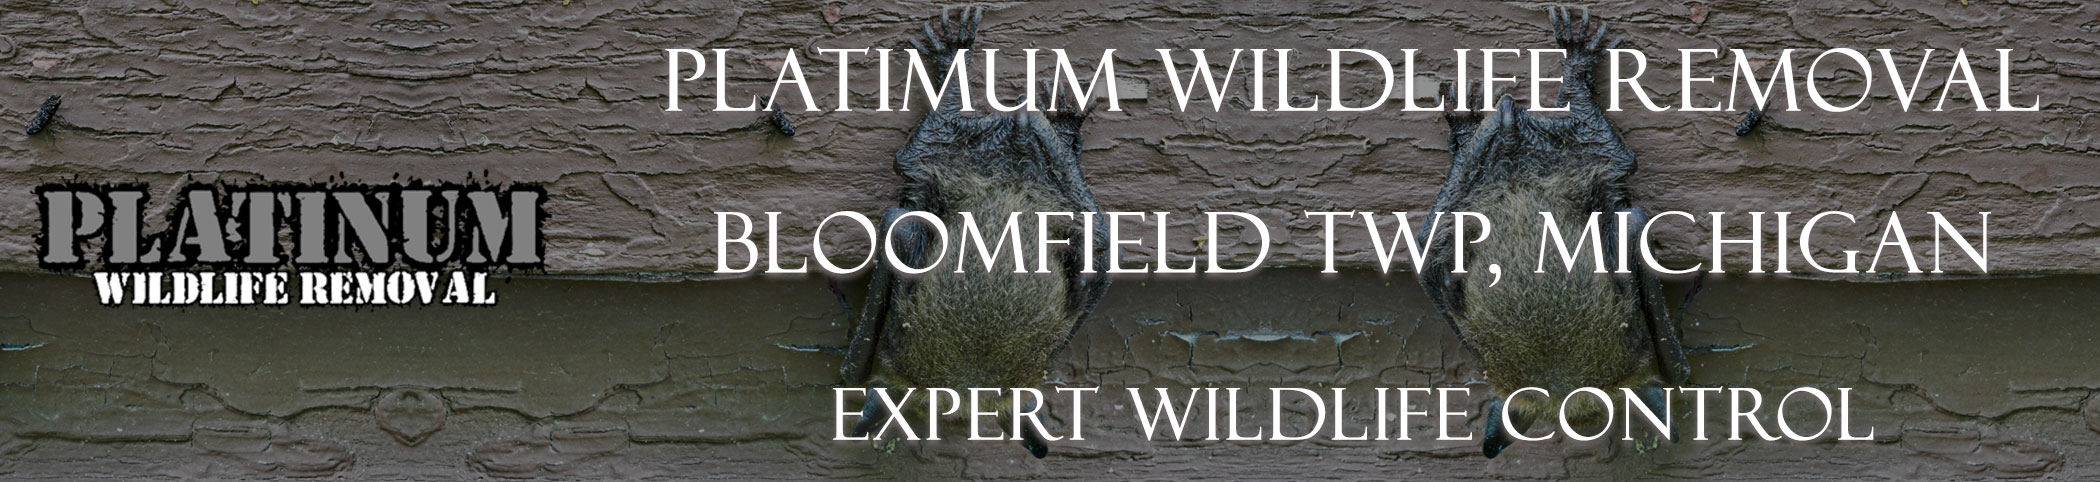 Bloomfield-TWP-Platinum-Wildlife-Removal_michgan